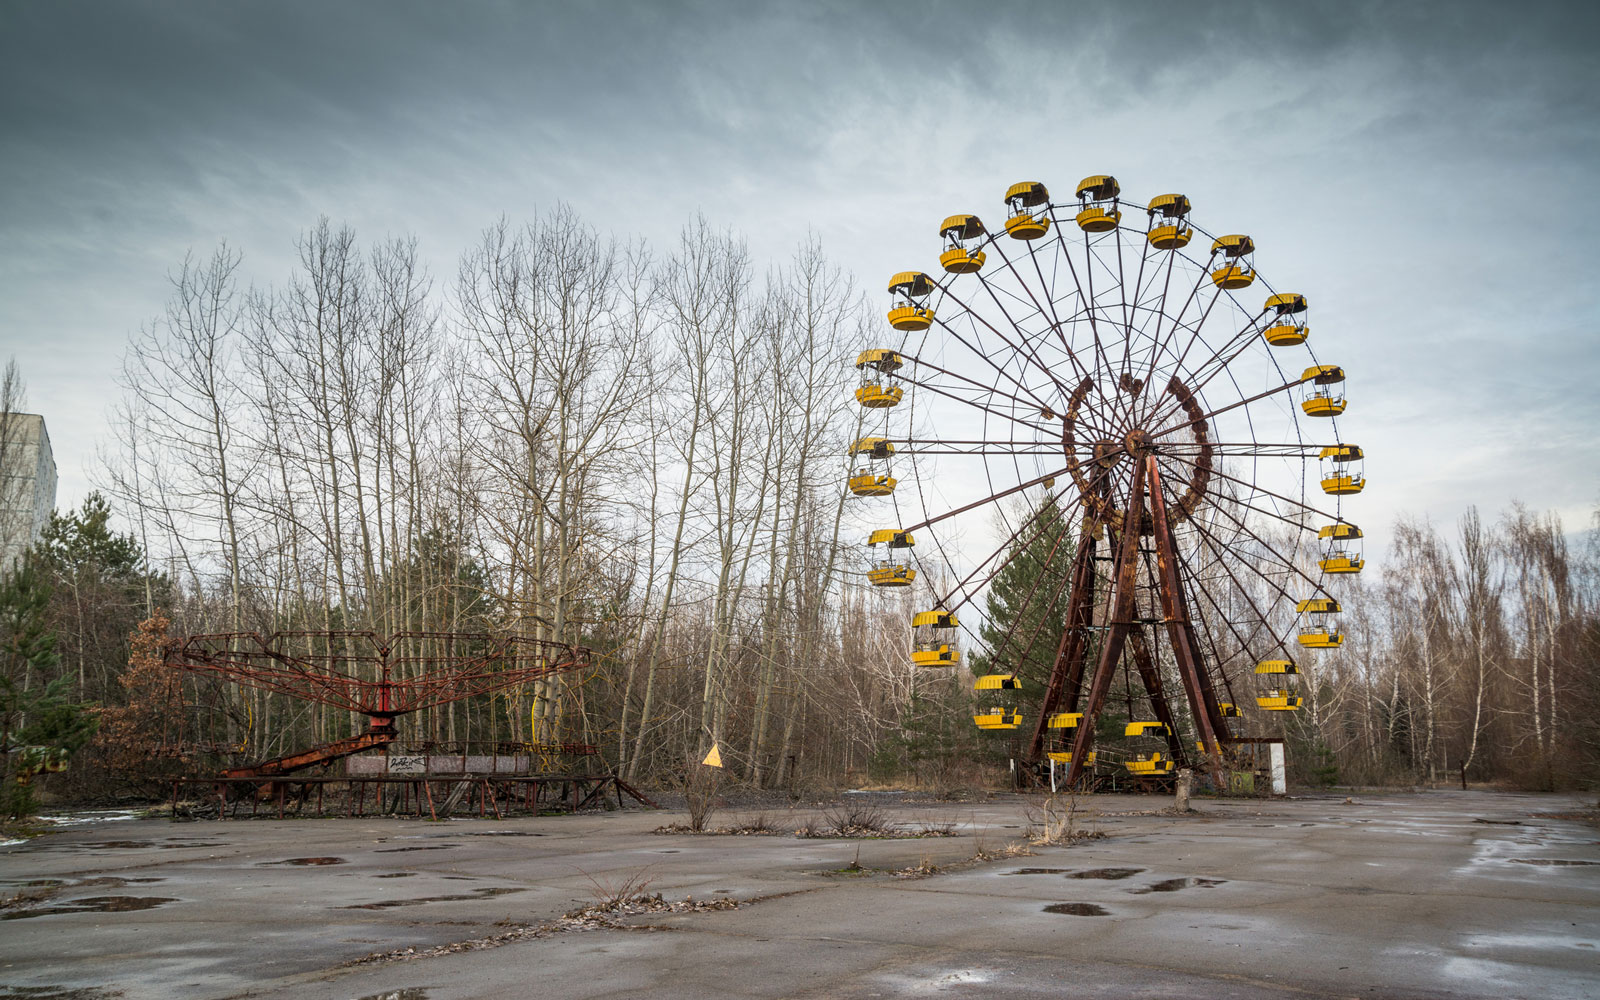 People Are Flocking to Visit Chernobyl Because of the HBO Miniseries